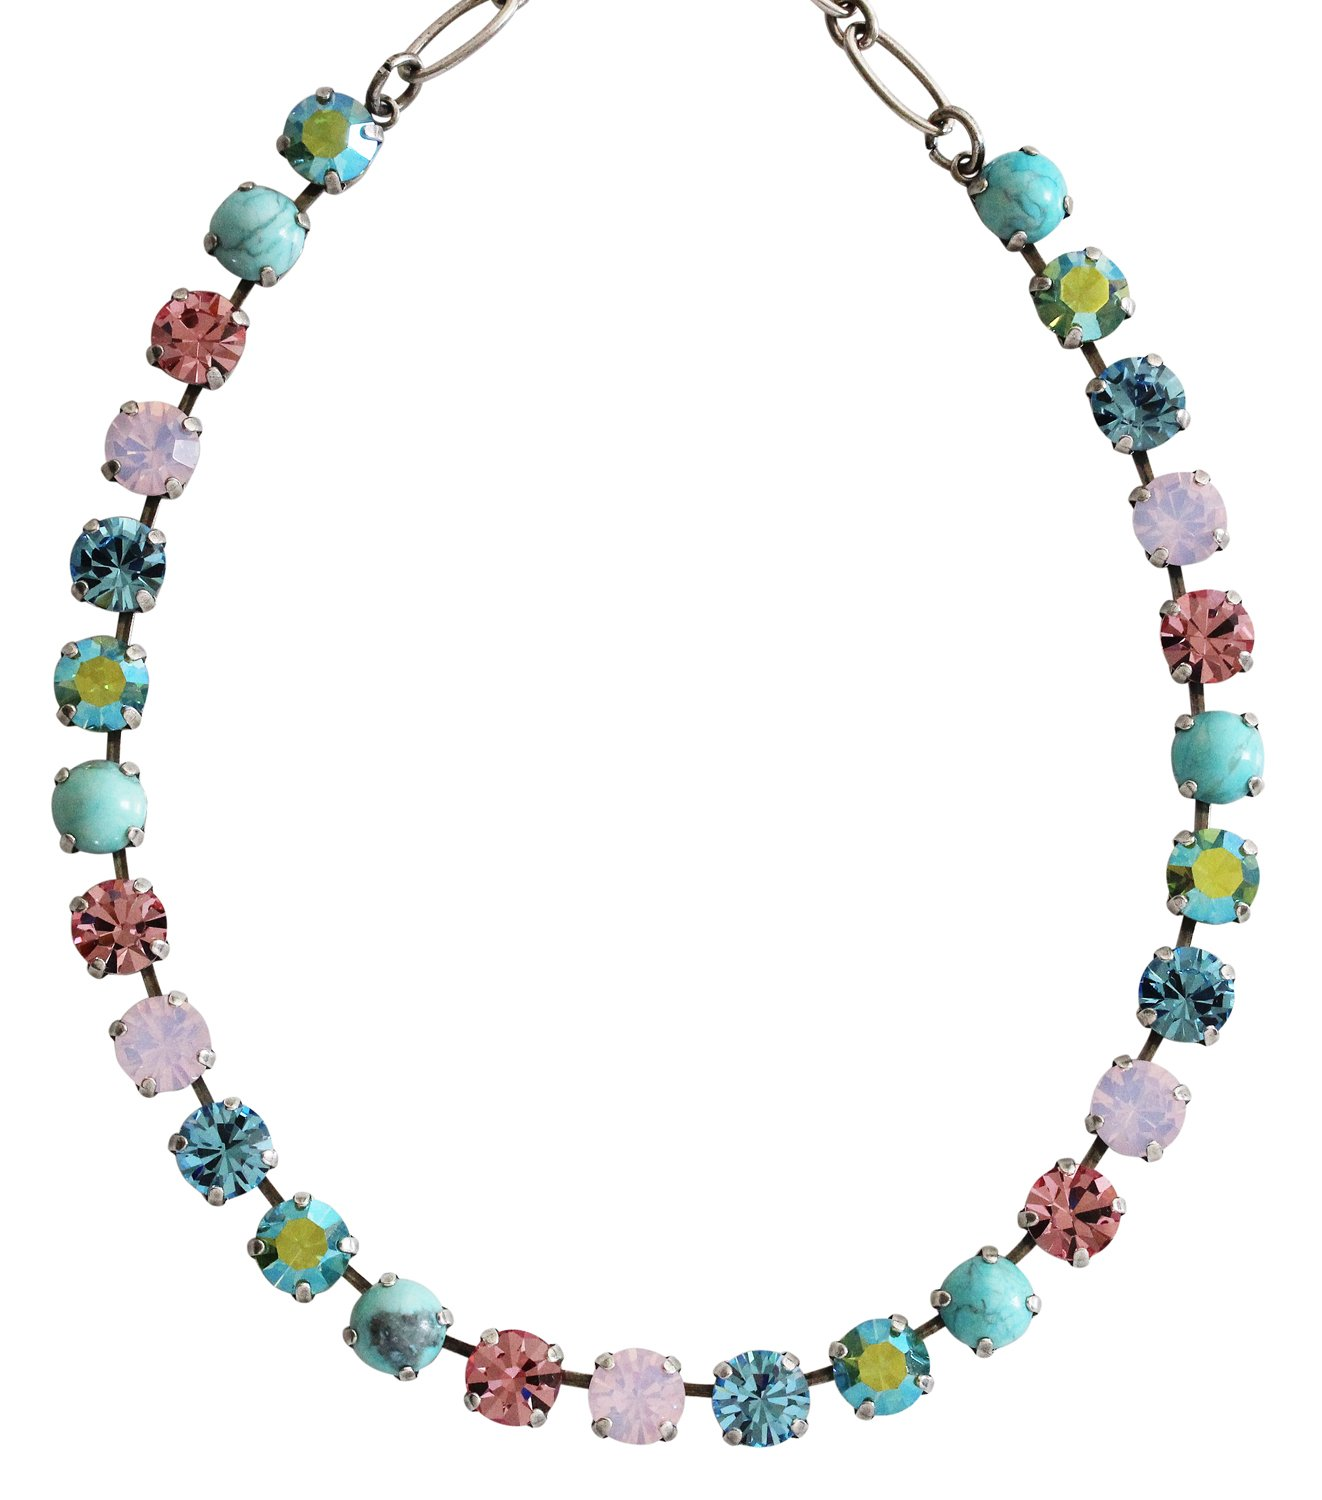 Mariana Silvertone Classic Shapes Crystal Tennis Necklace, Summer Fun Blue Pink Multi Color 3252 M75-2